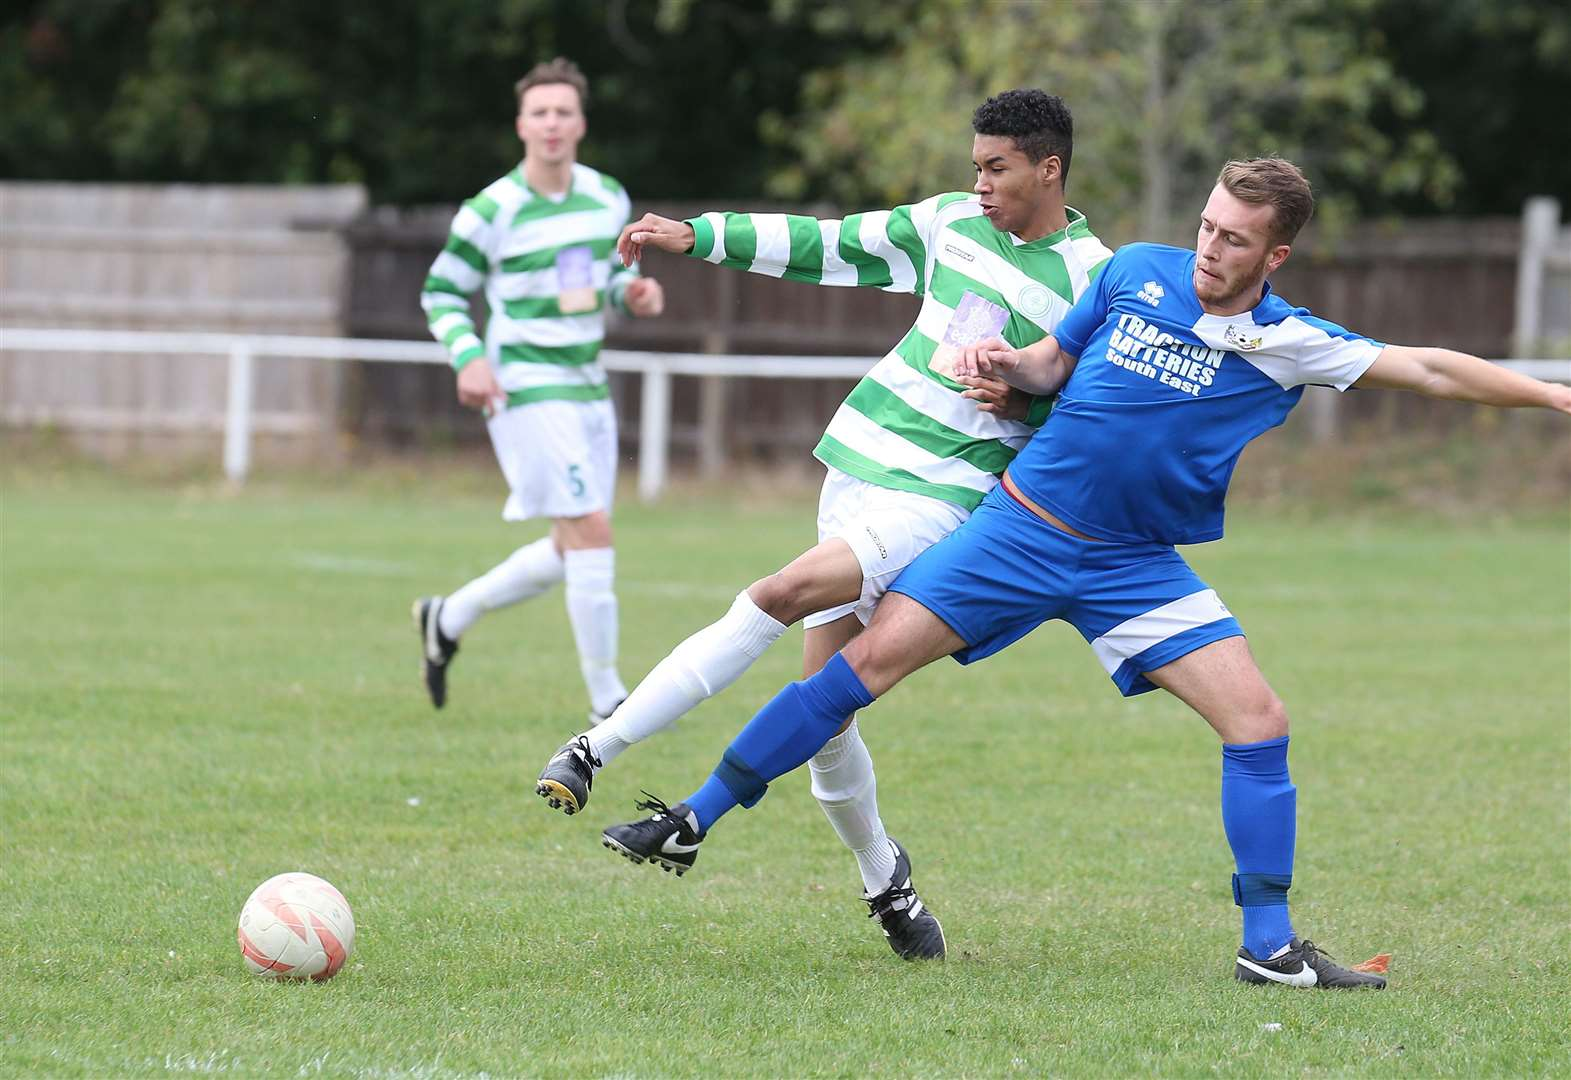 Cornard beaten by 'a top three side'